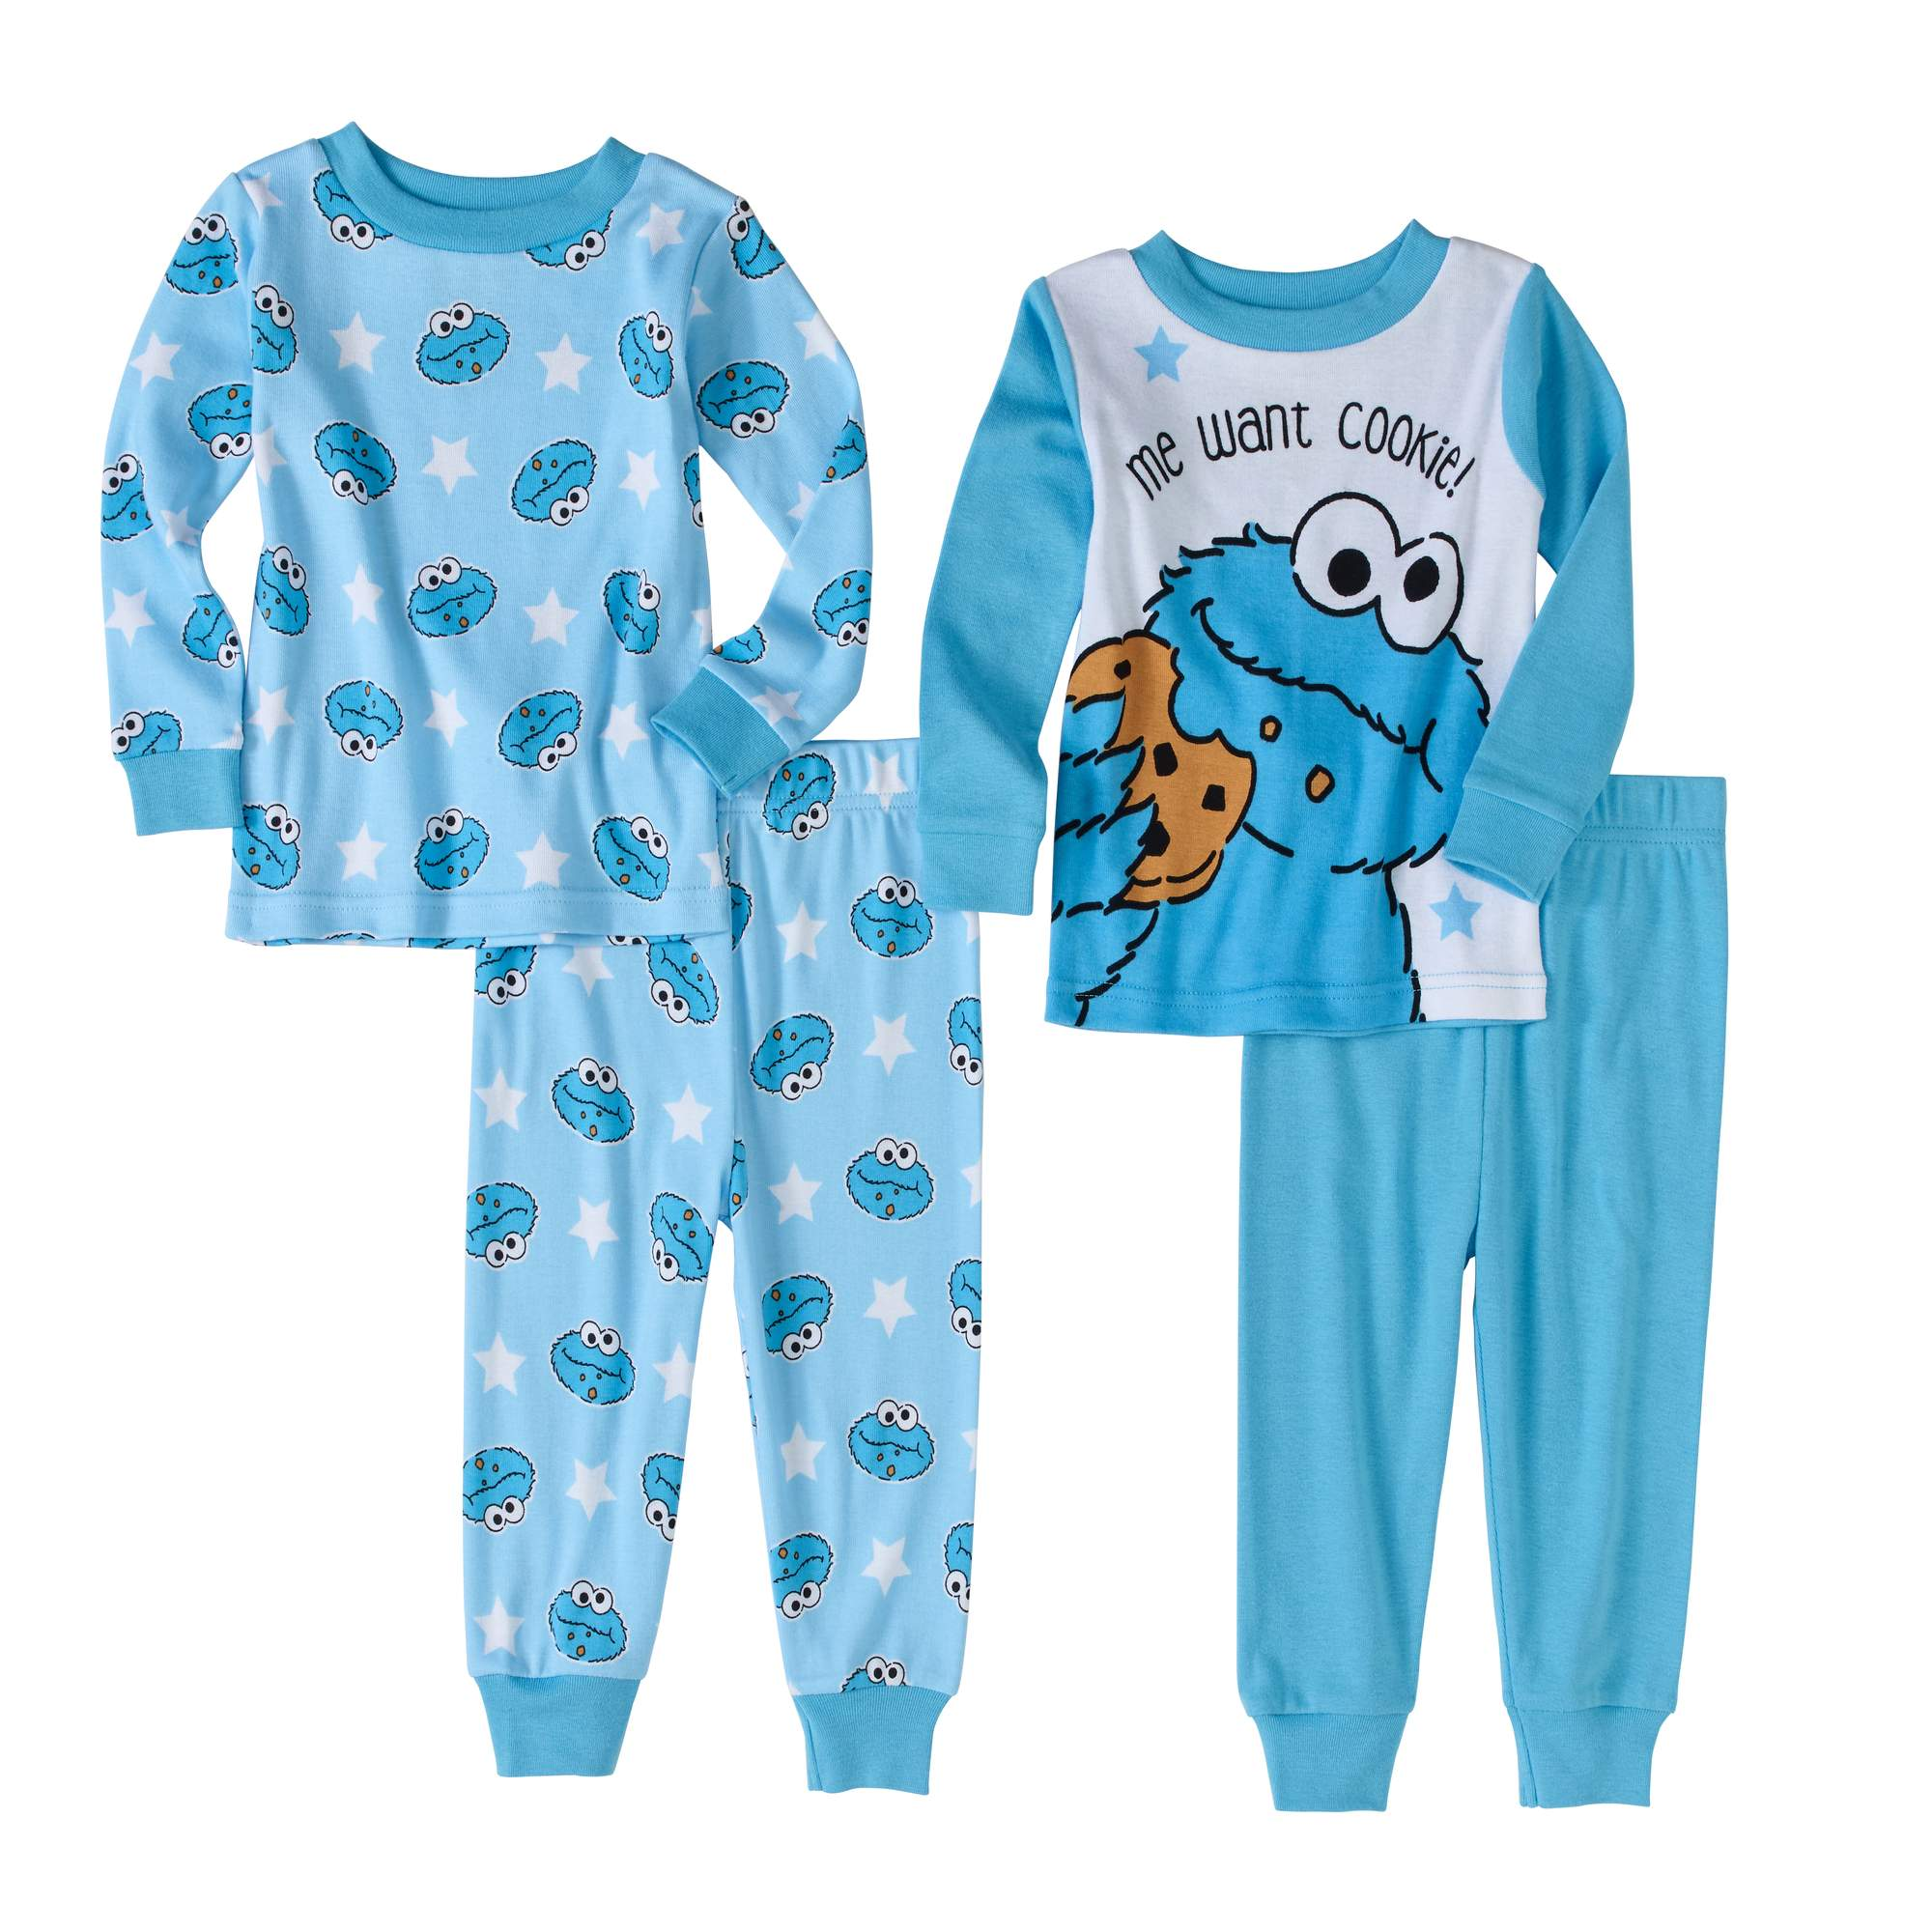 Sesame Street Baby Boys' Cookie Monster Cotton Tight Fit Pajamas, 4-Piece Set